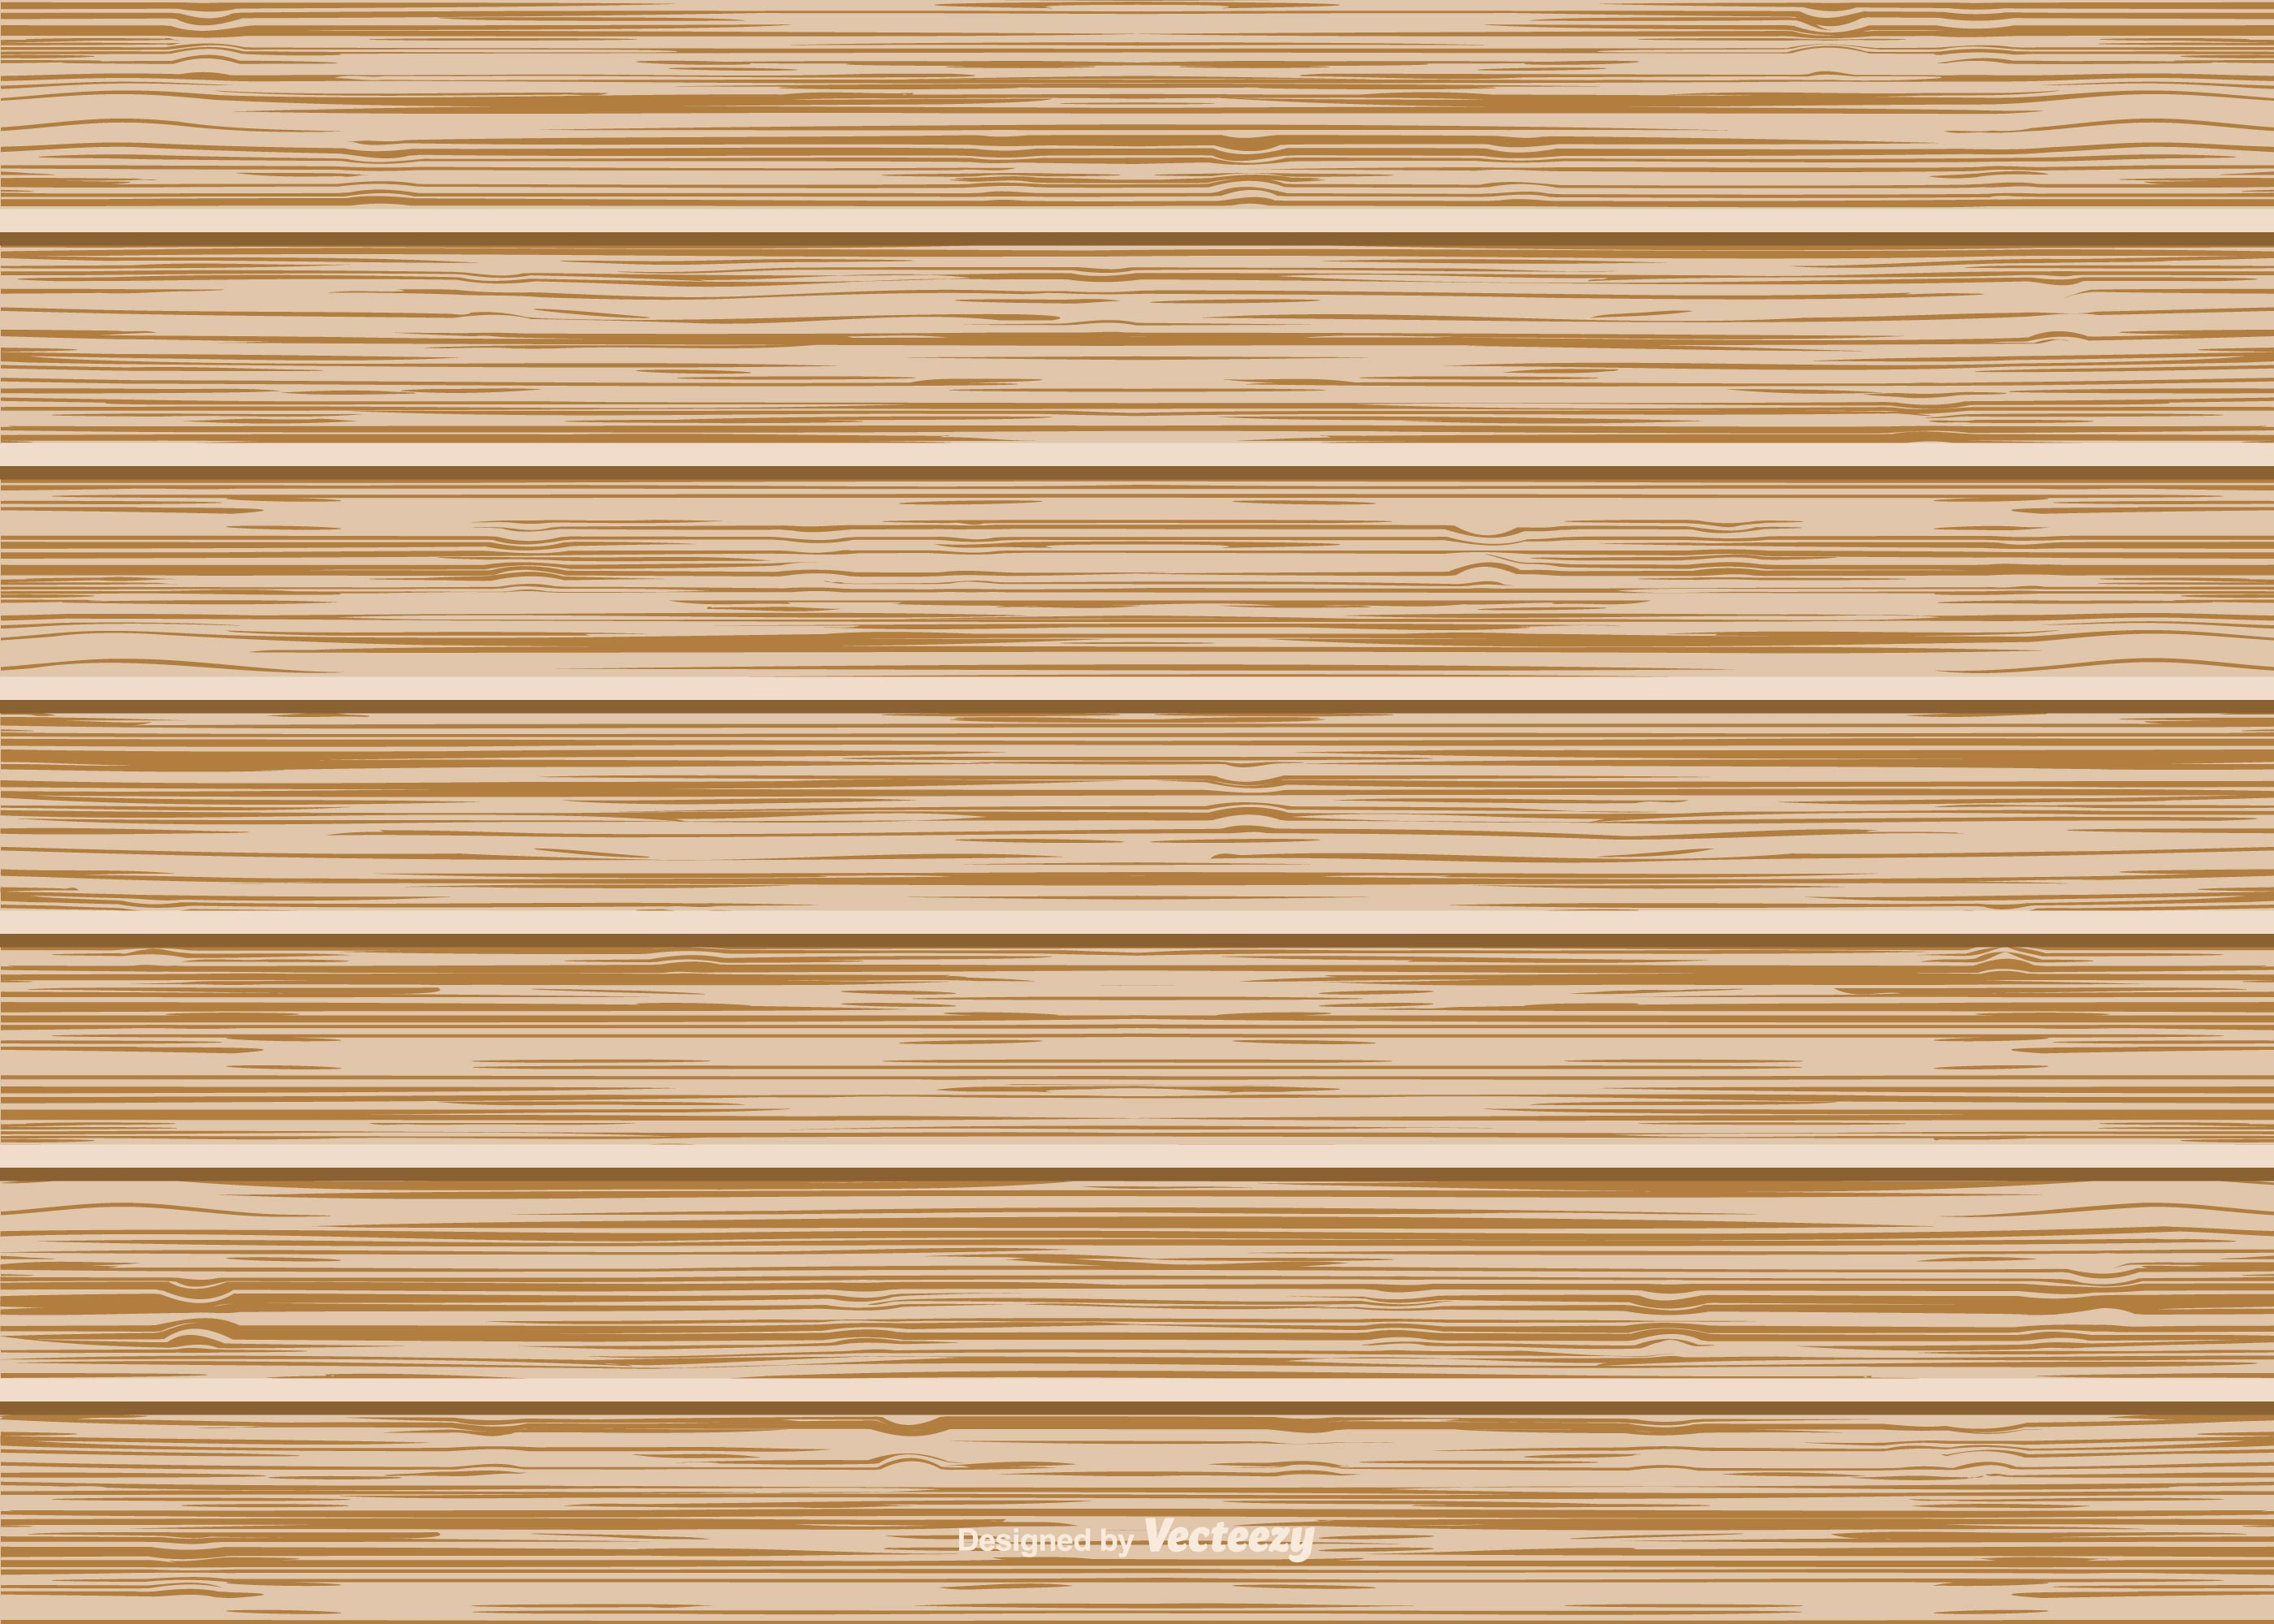 Wood Grain Texture Free Vector Art 13521 Free Downloads